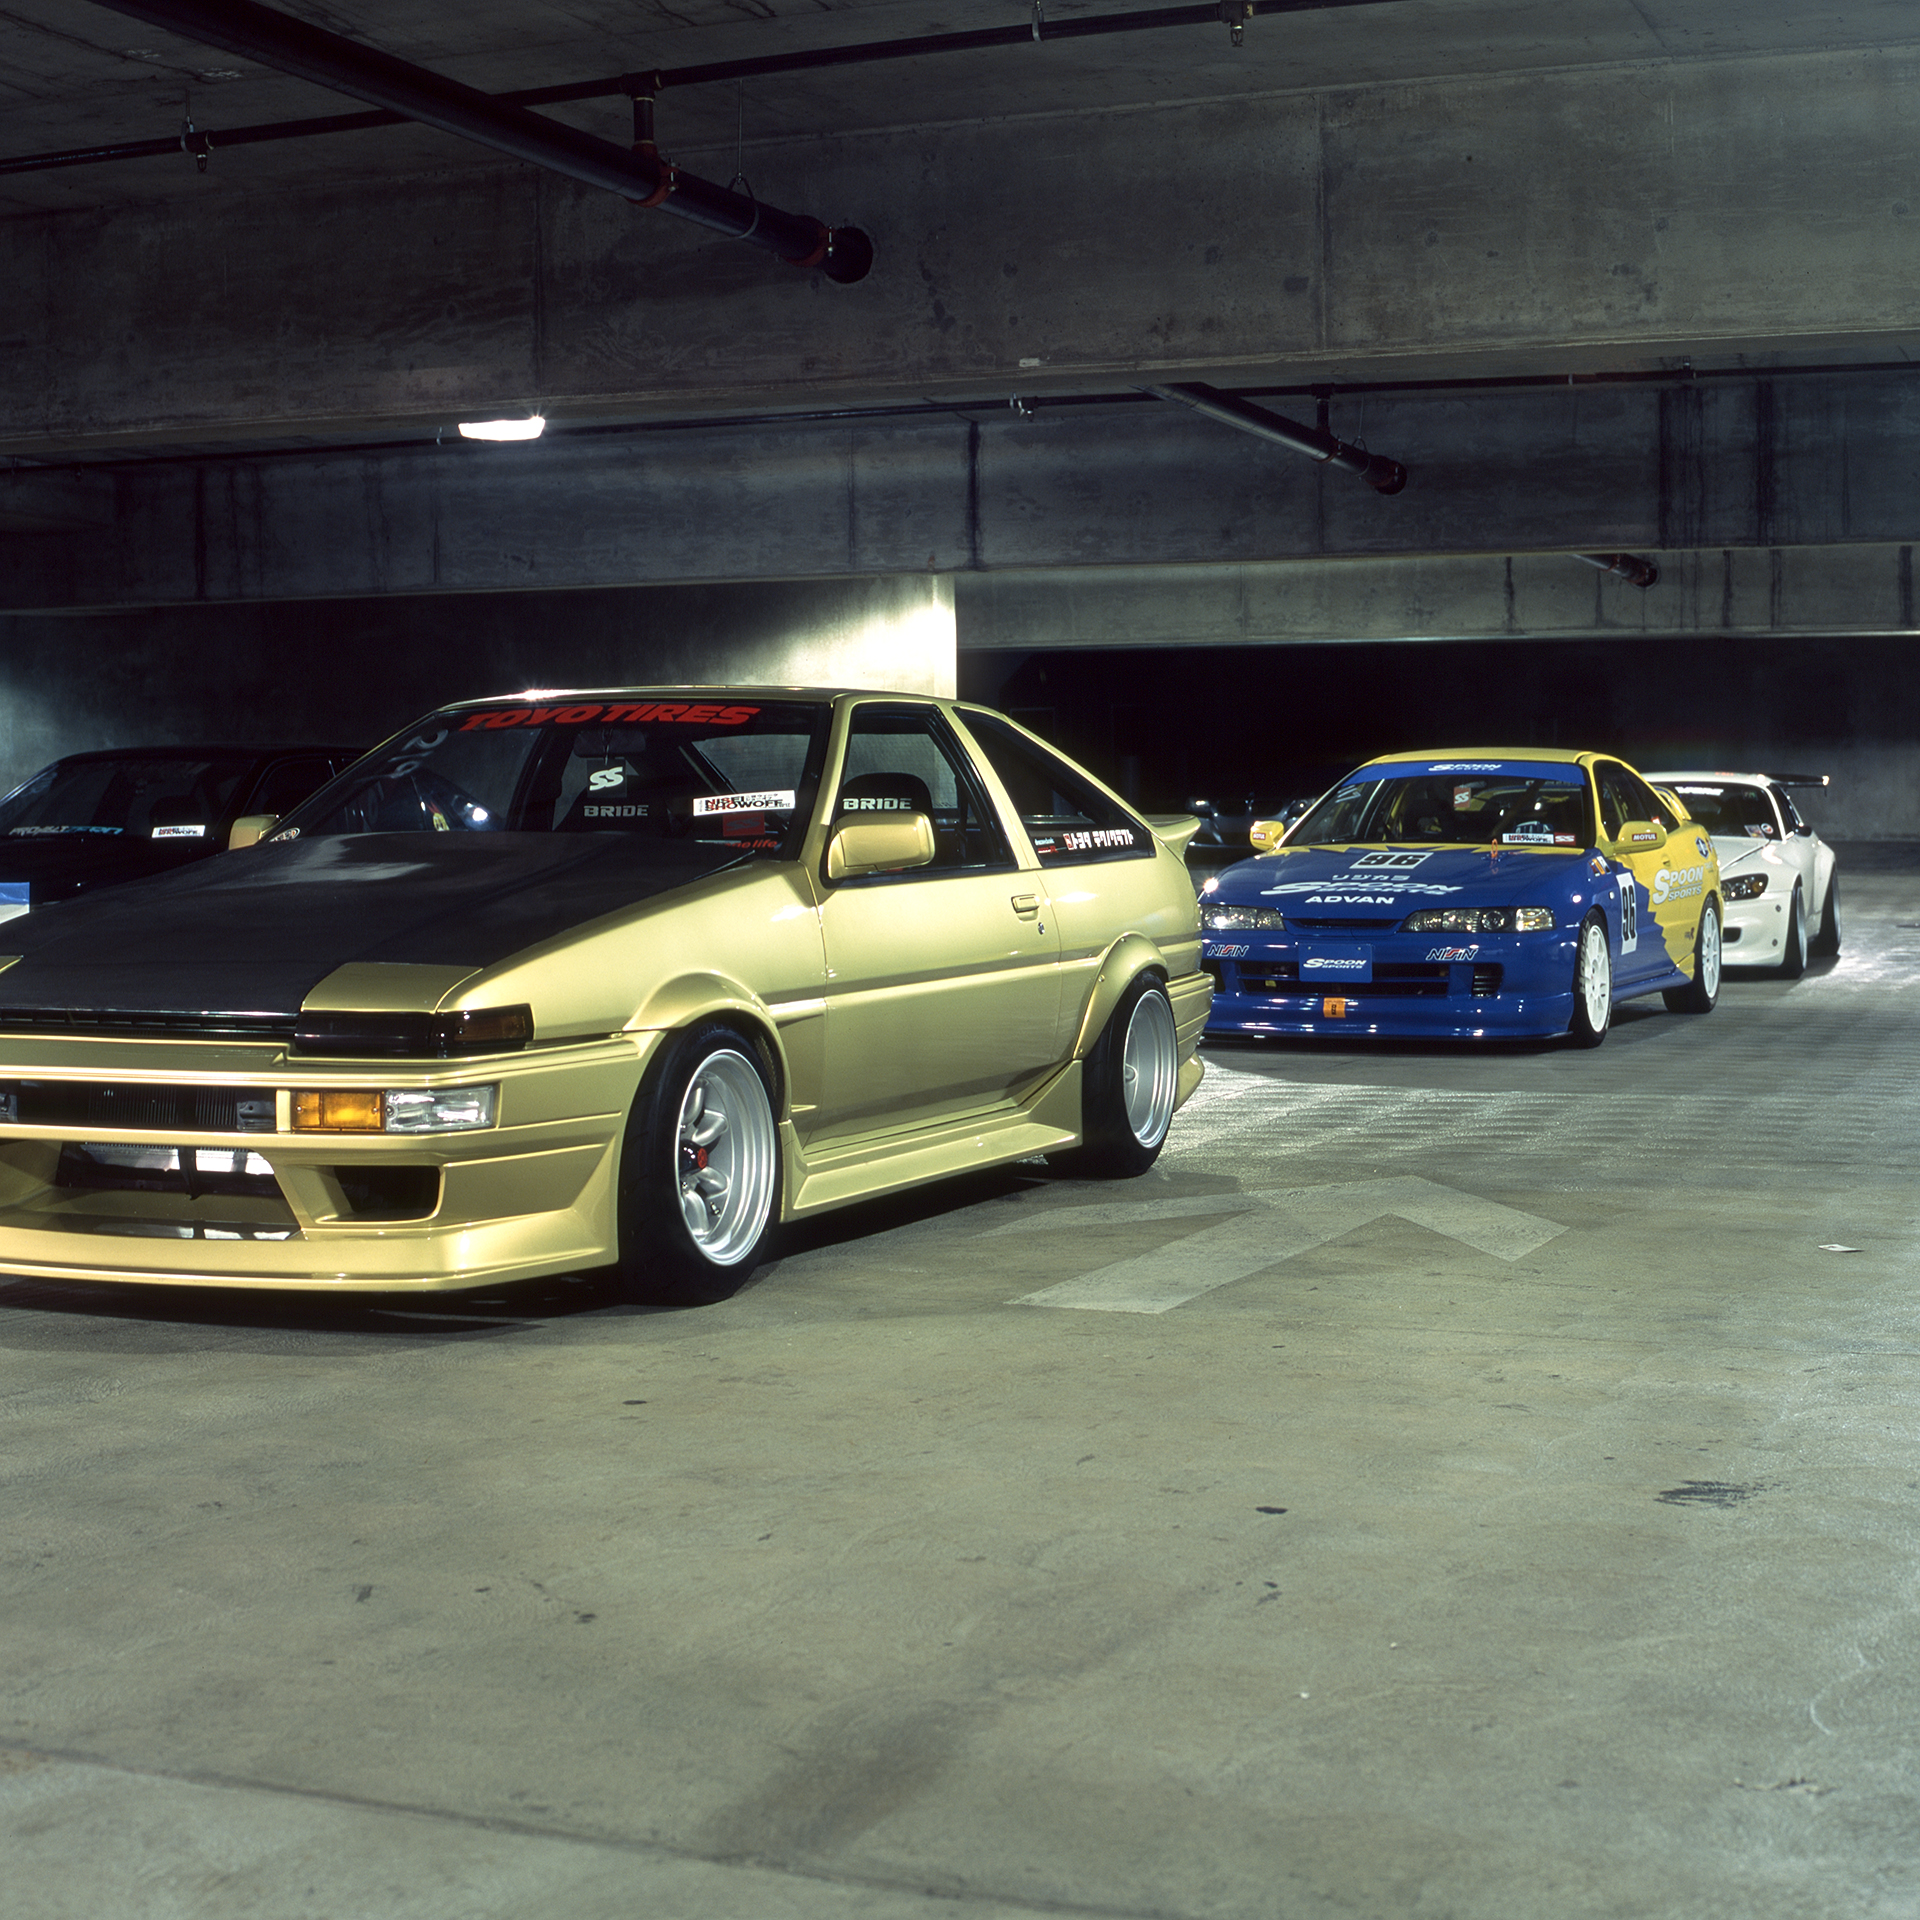 Toyota AE86, Spoon Acura Integra, and Honda S2000 lined up